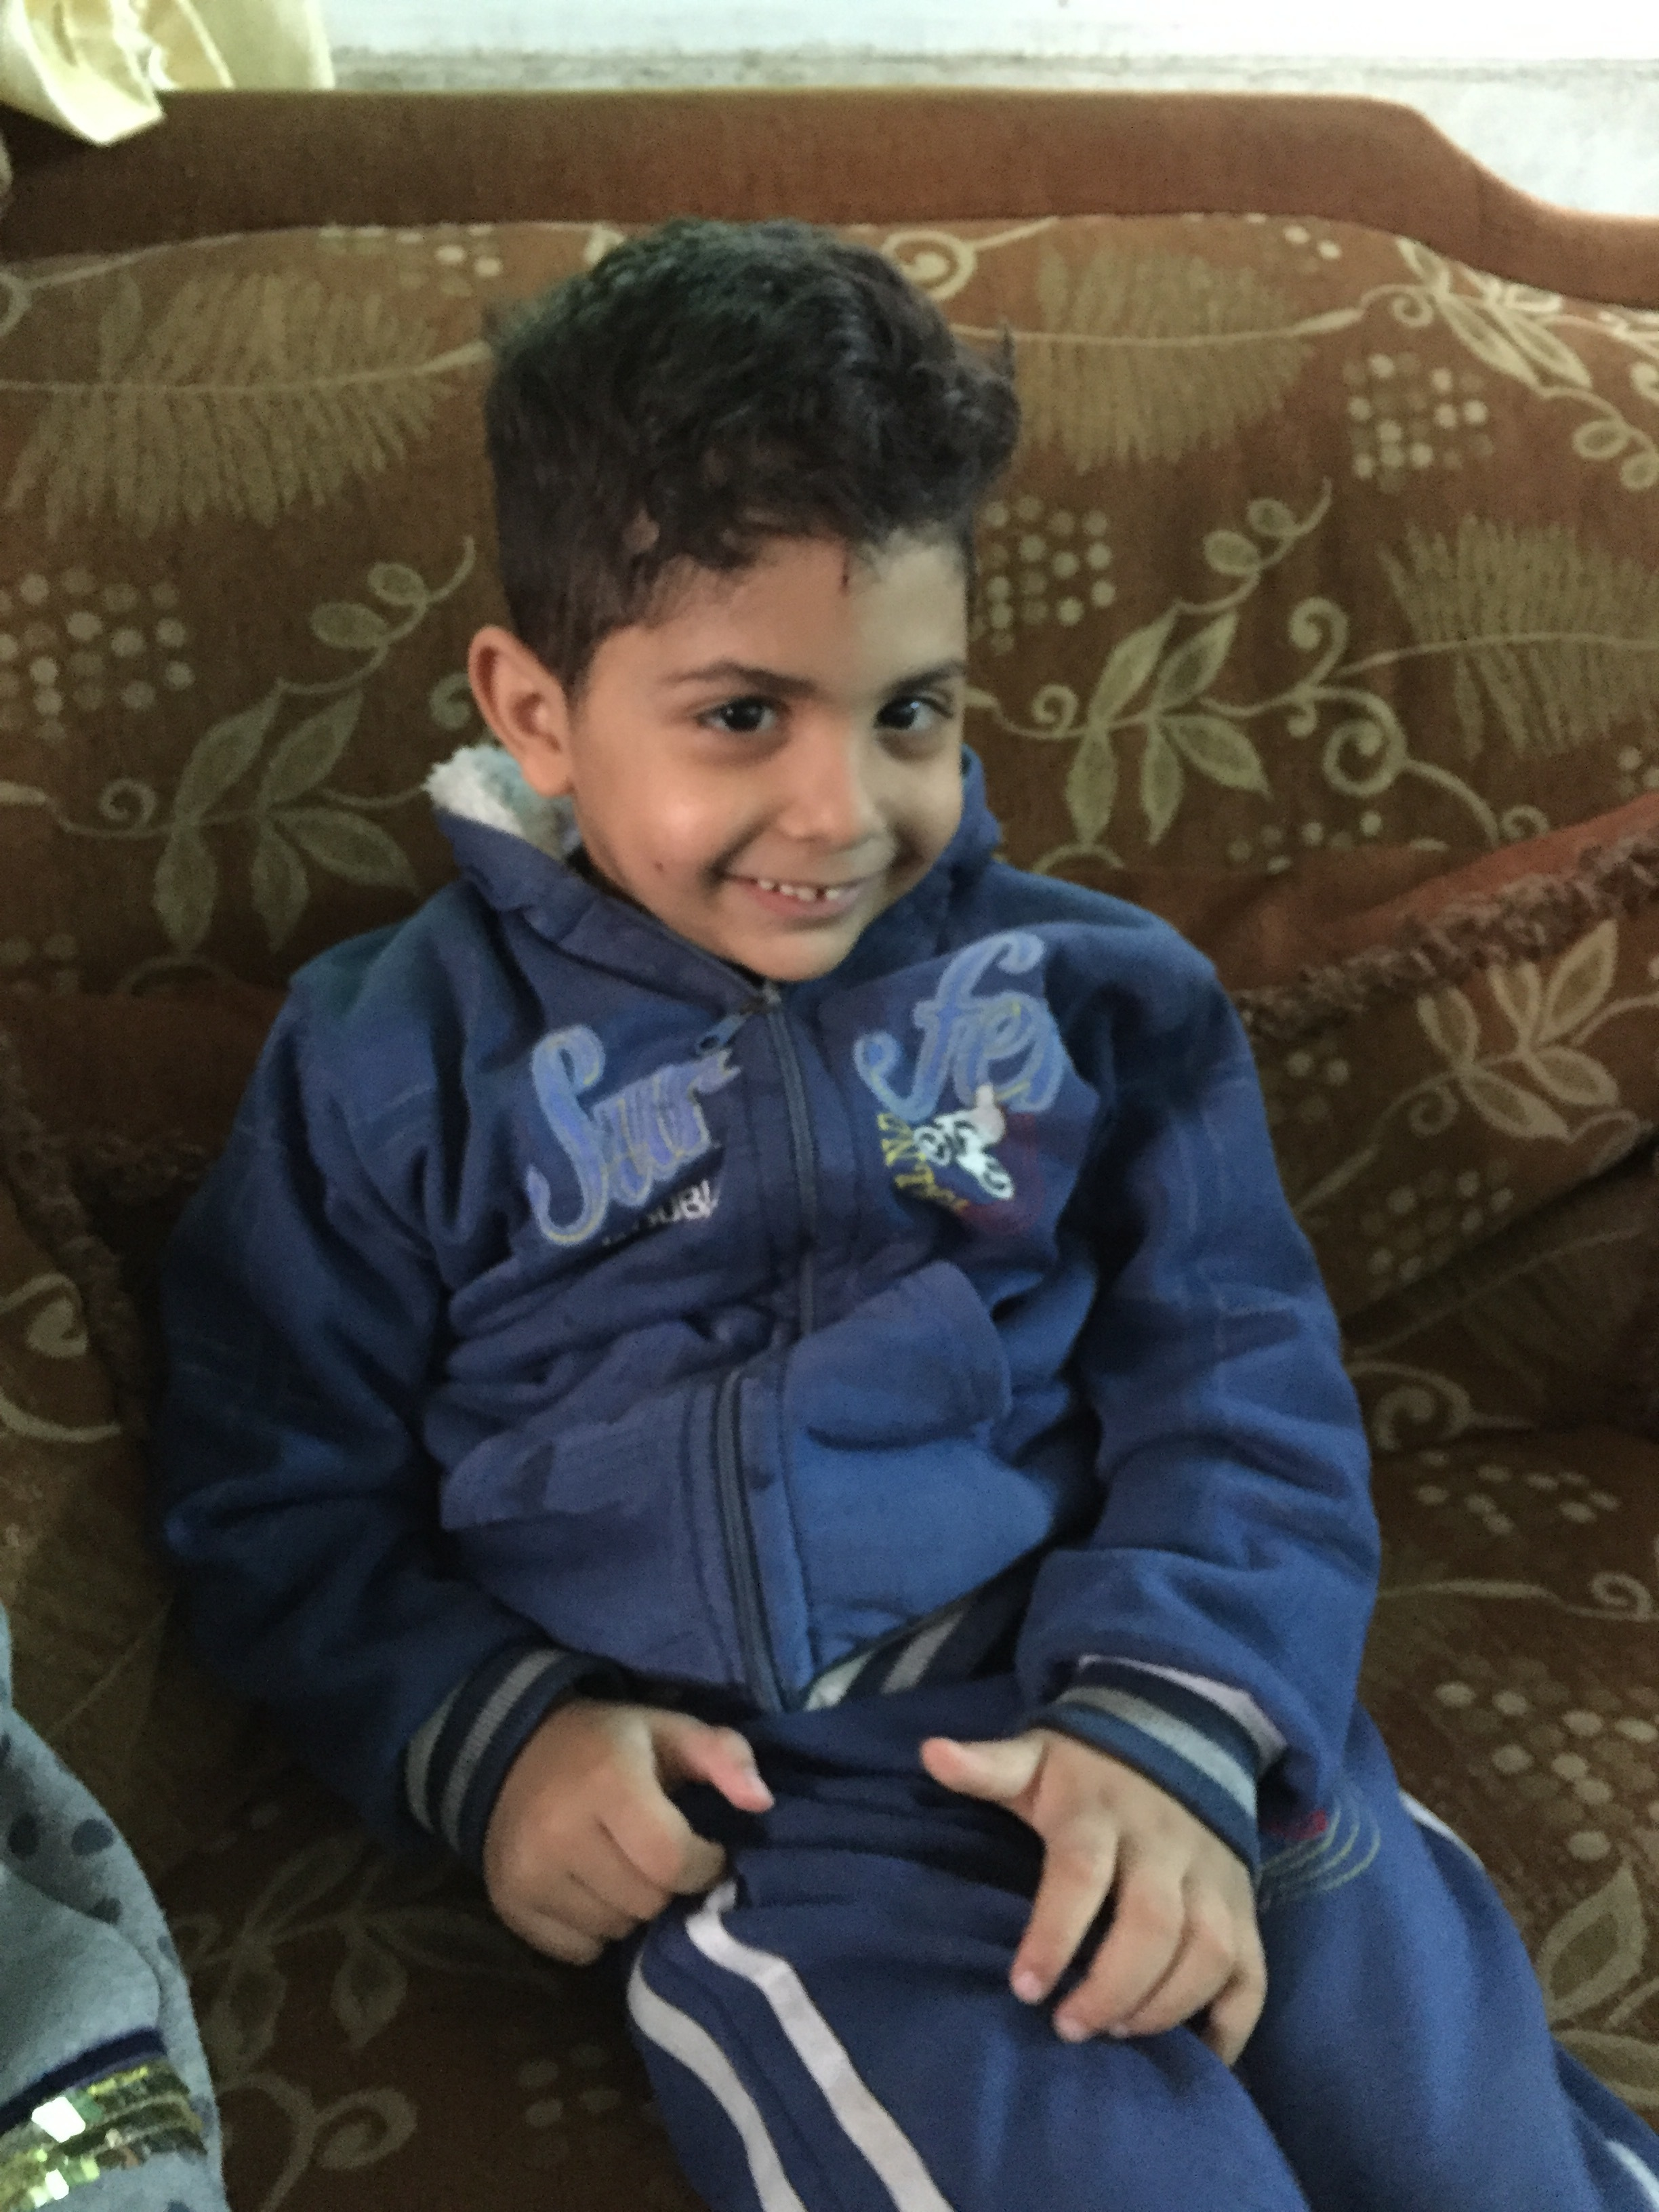 The dreams of a child - To go to school like everyone else is what Zeid and so many other children wish for